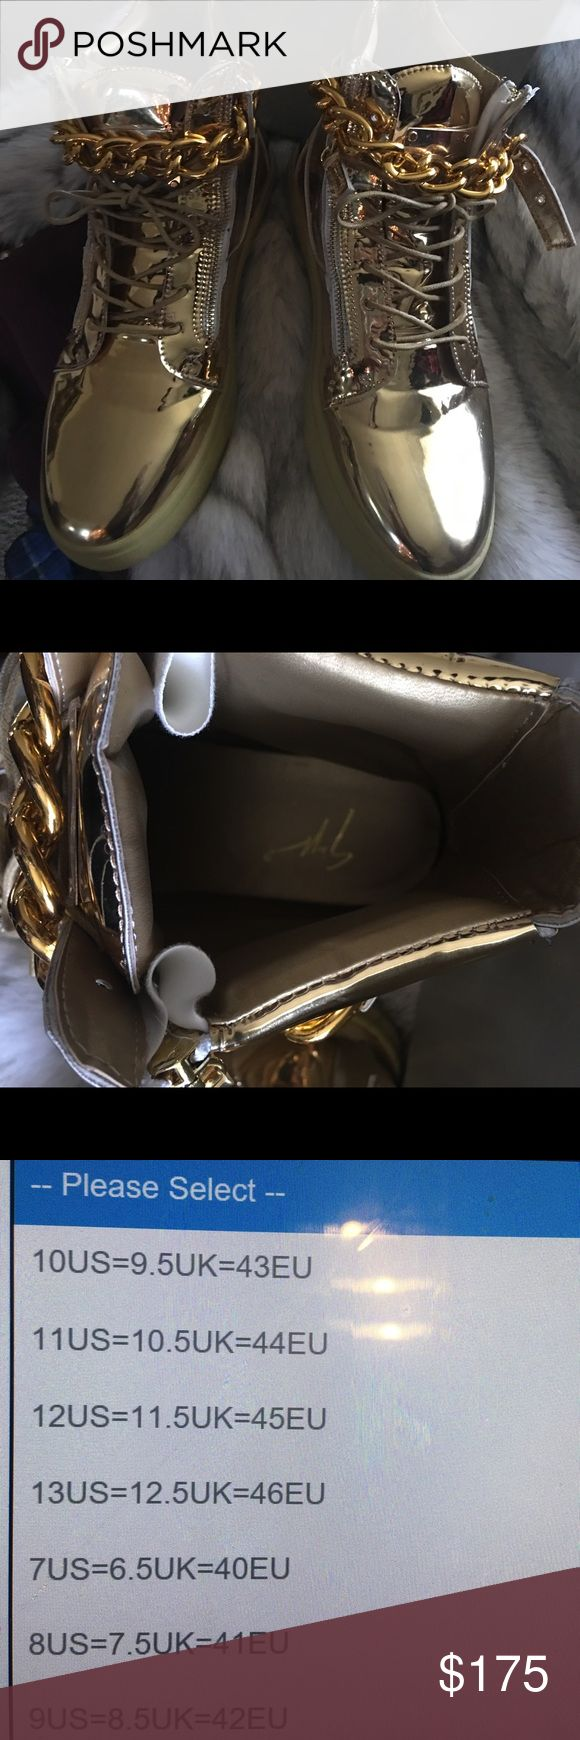 Giuseppe Zanitti inspired Men's Metal Chain Gold May be worn by men and women. These high top Sneakers are new  and too big for me. I wear a women size 11  and miscalculated the conversion.  This is a men size 45  US 12.  Great looking sneaker for men or women Shoes Sneakers